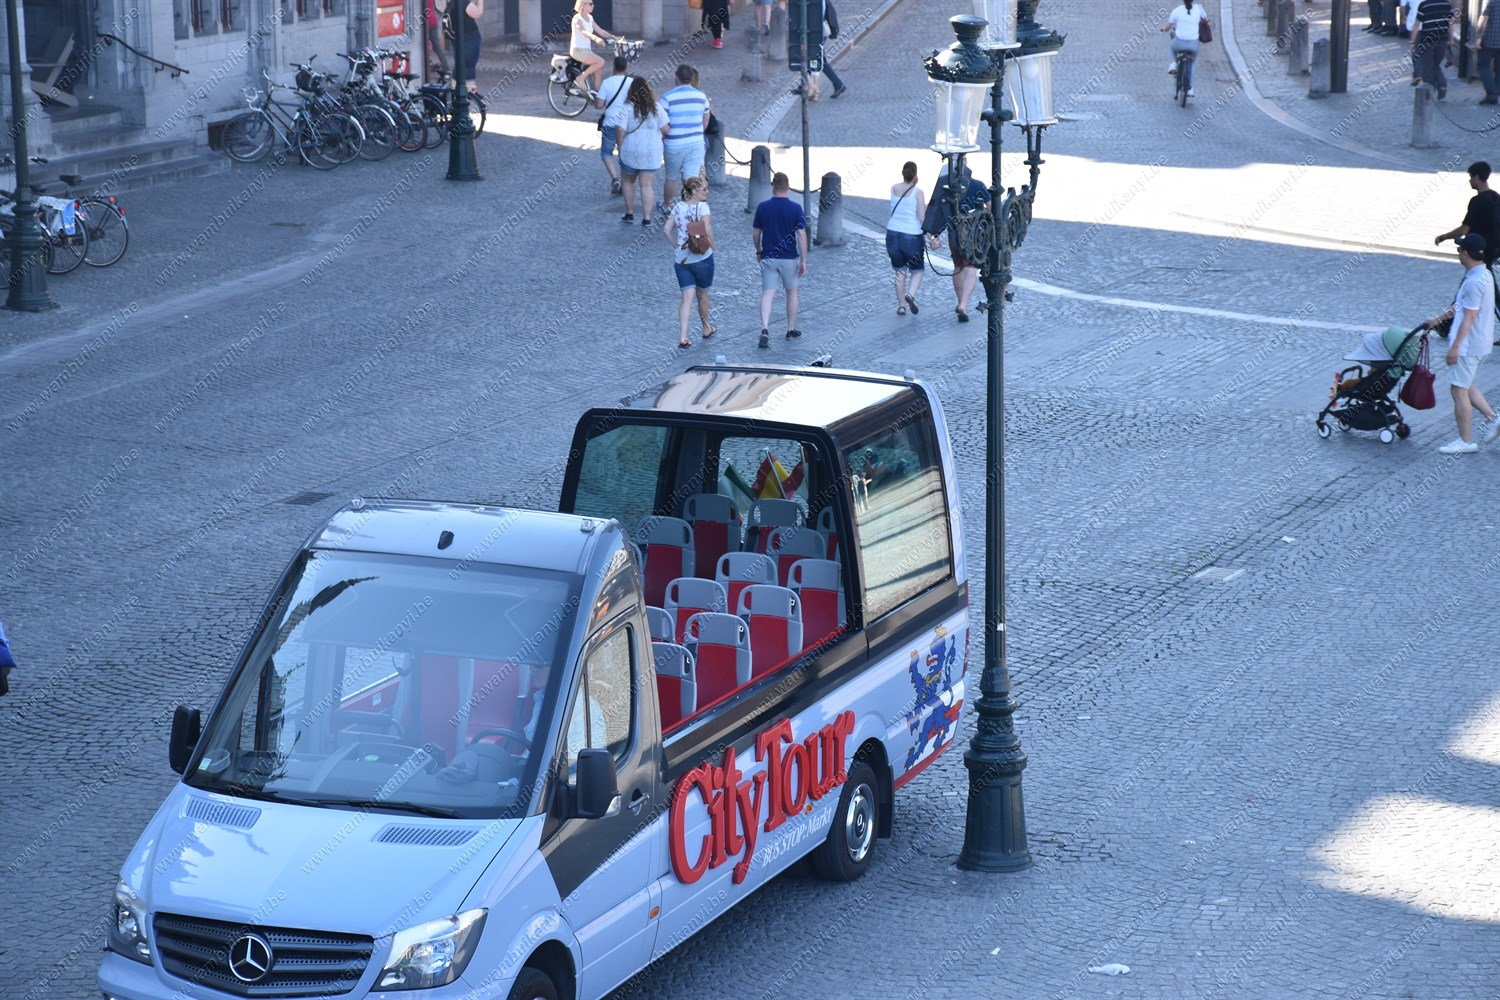 City tour Car in Belgium